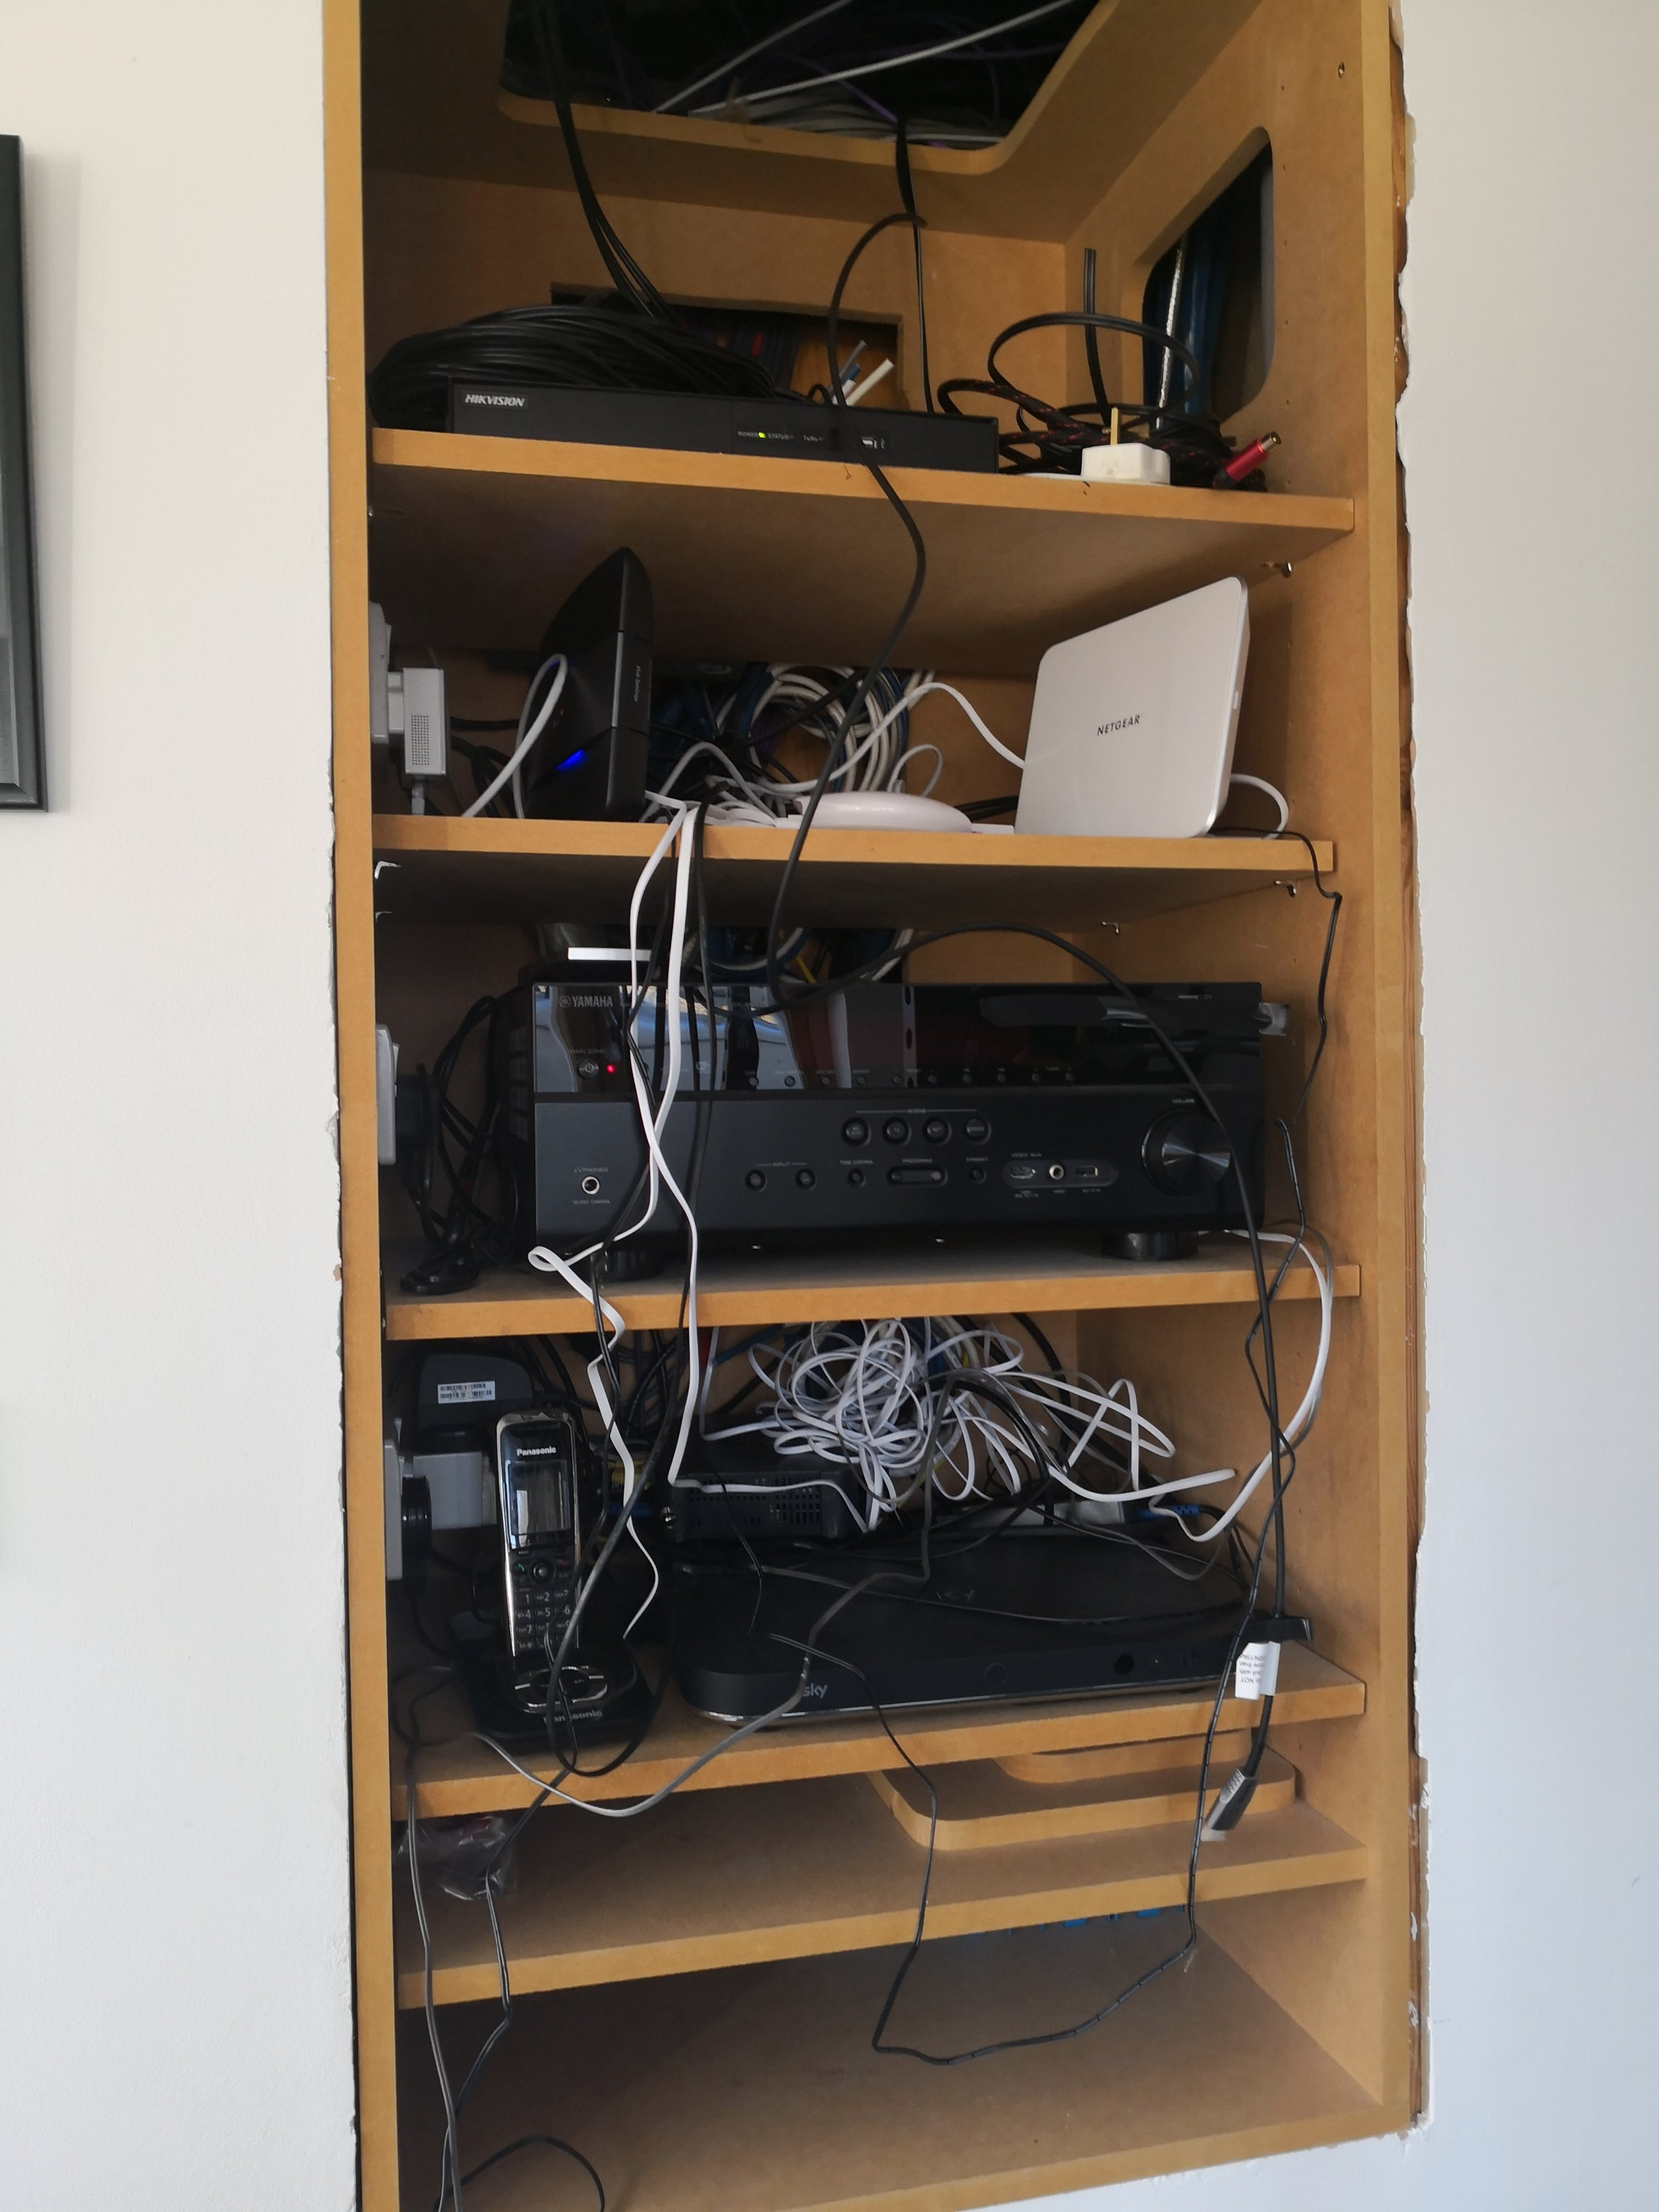 The clients networking and AV equipment when we arrived.